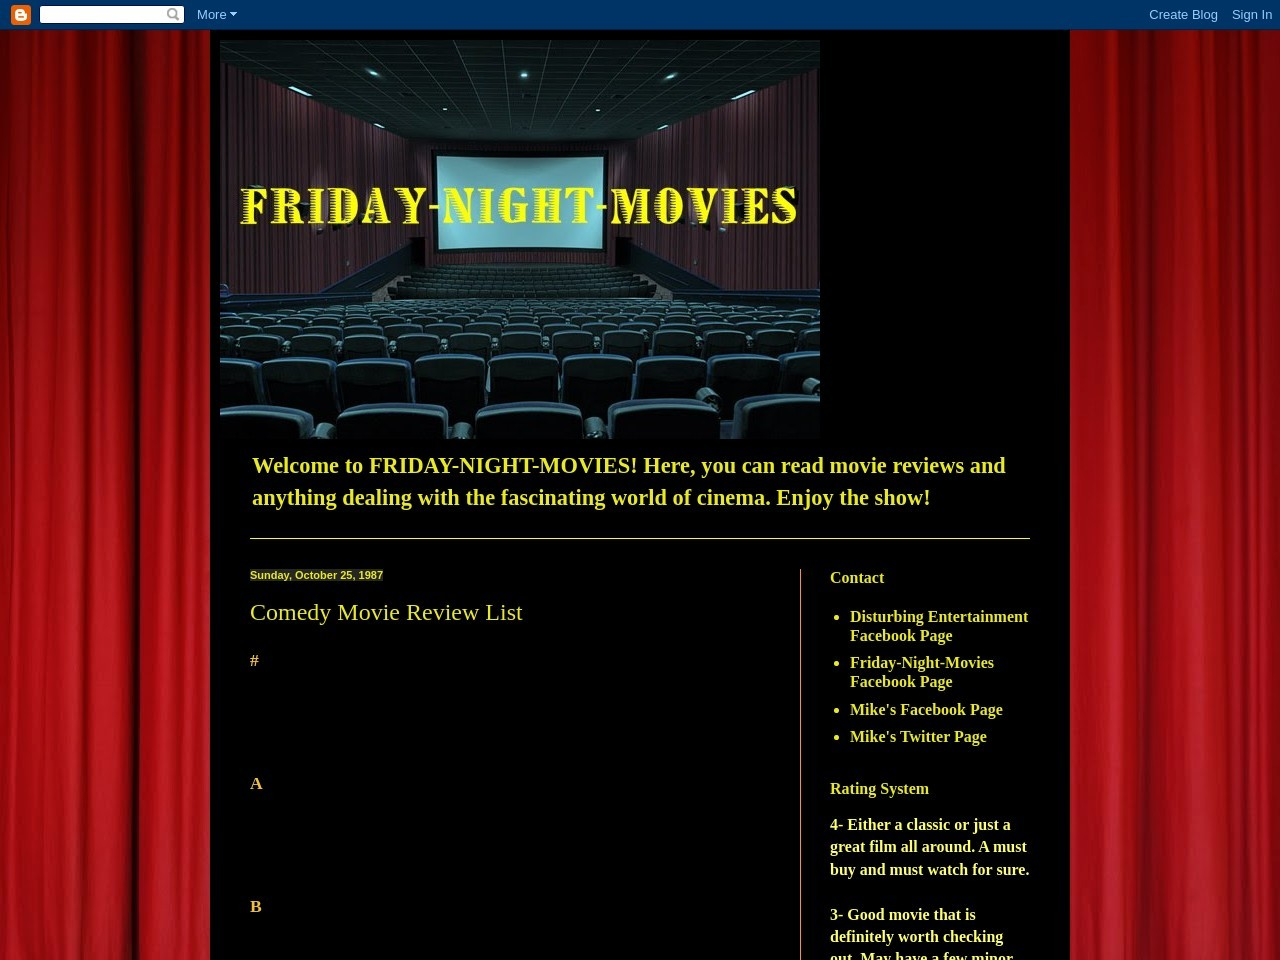 Friday-Night-Movies: Comedy Movie Review List